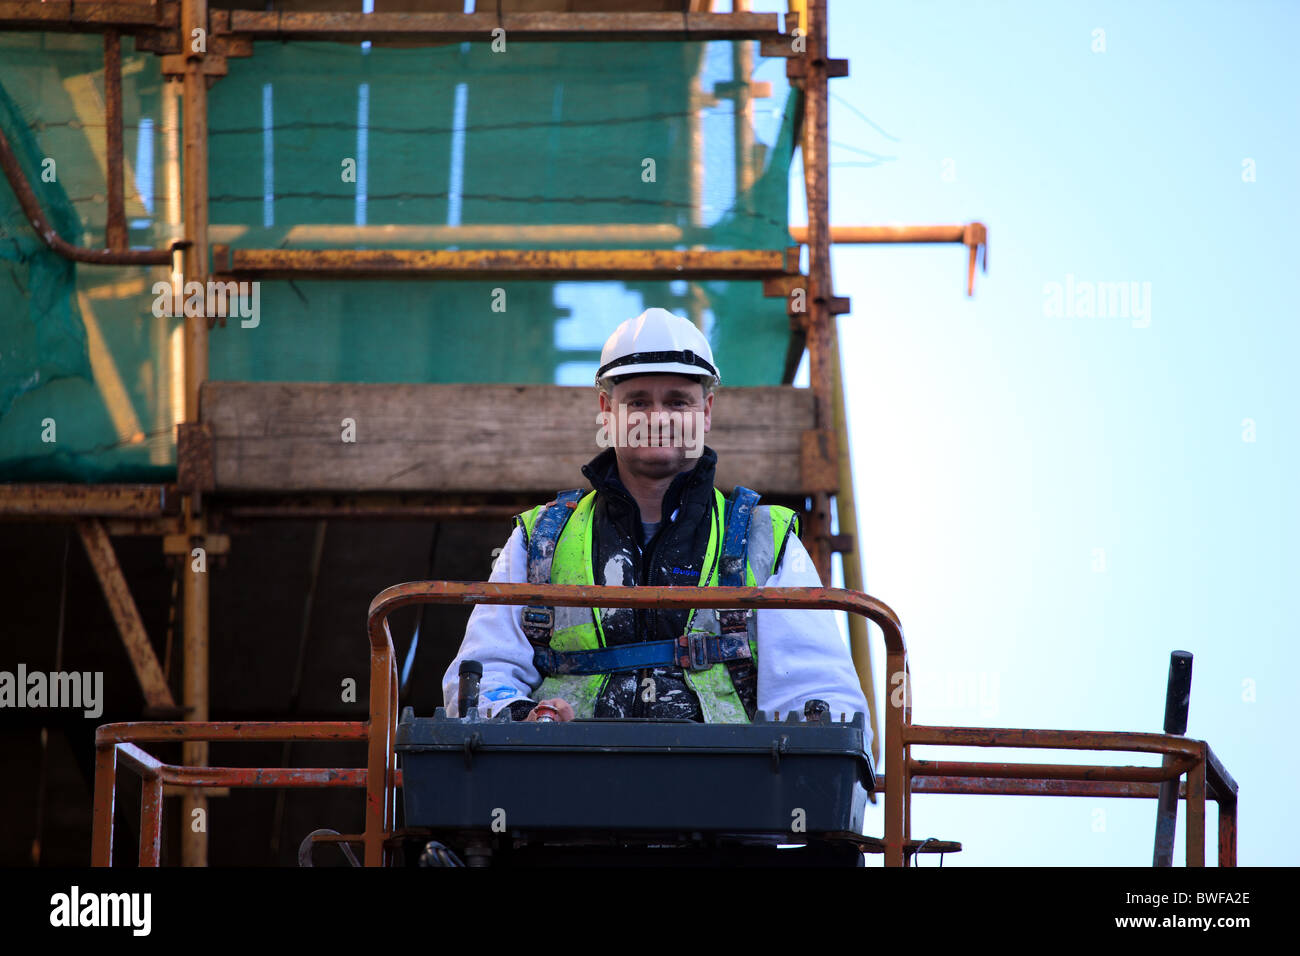 Workman on hoist wearing safety harness and hard hat - Stock Image